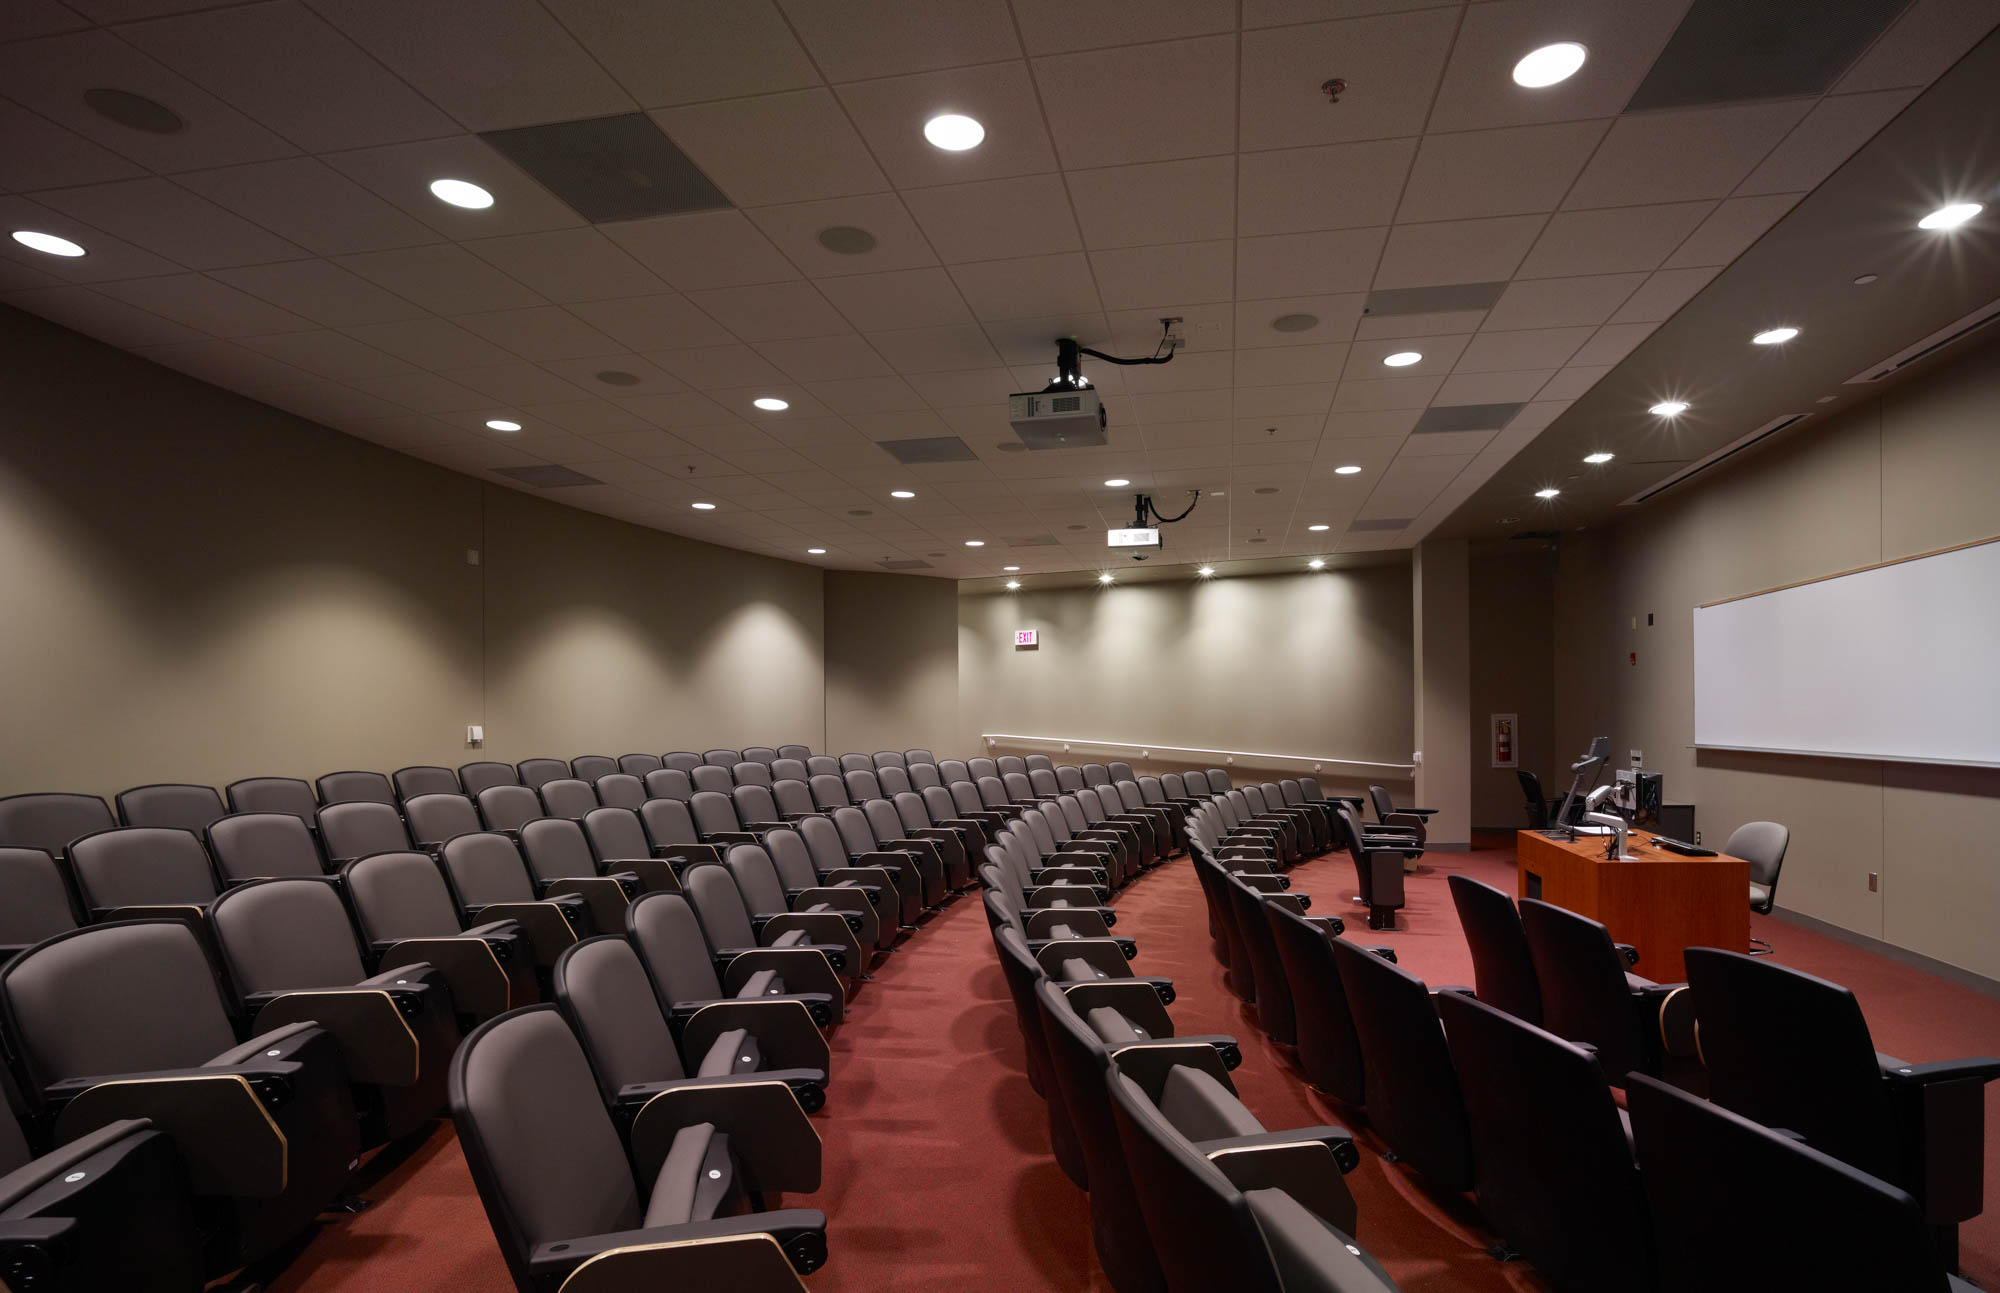 Technology Classroom Building sloped floor lecture theater